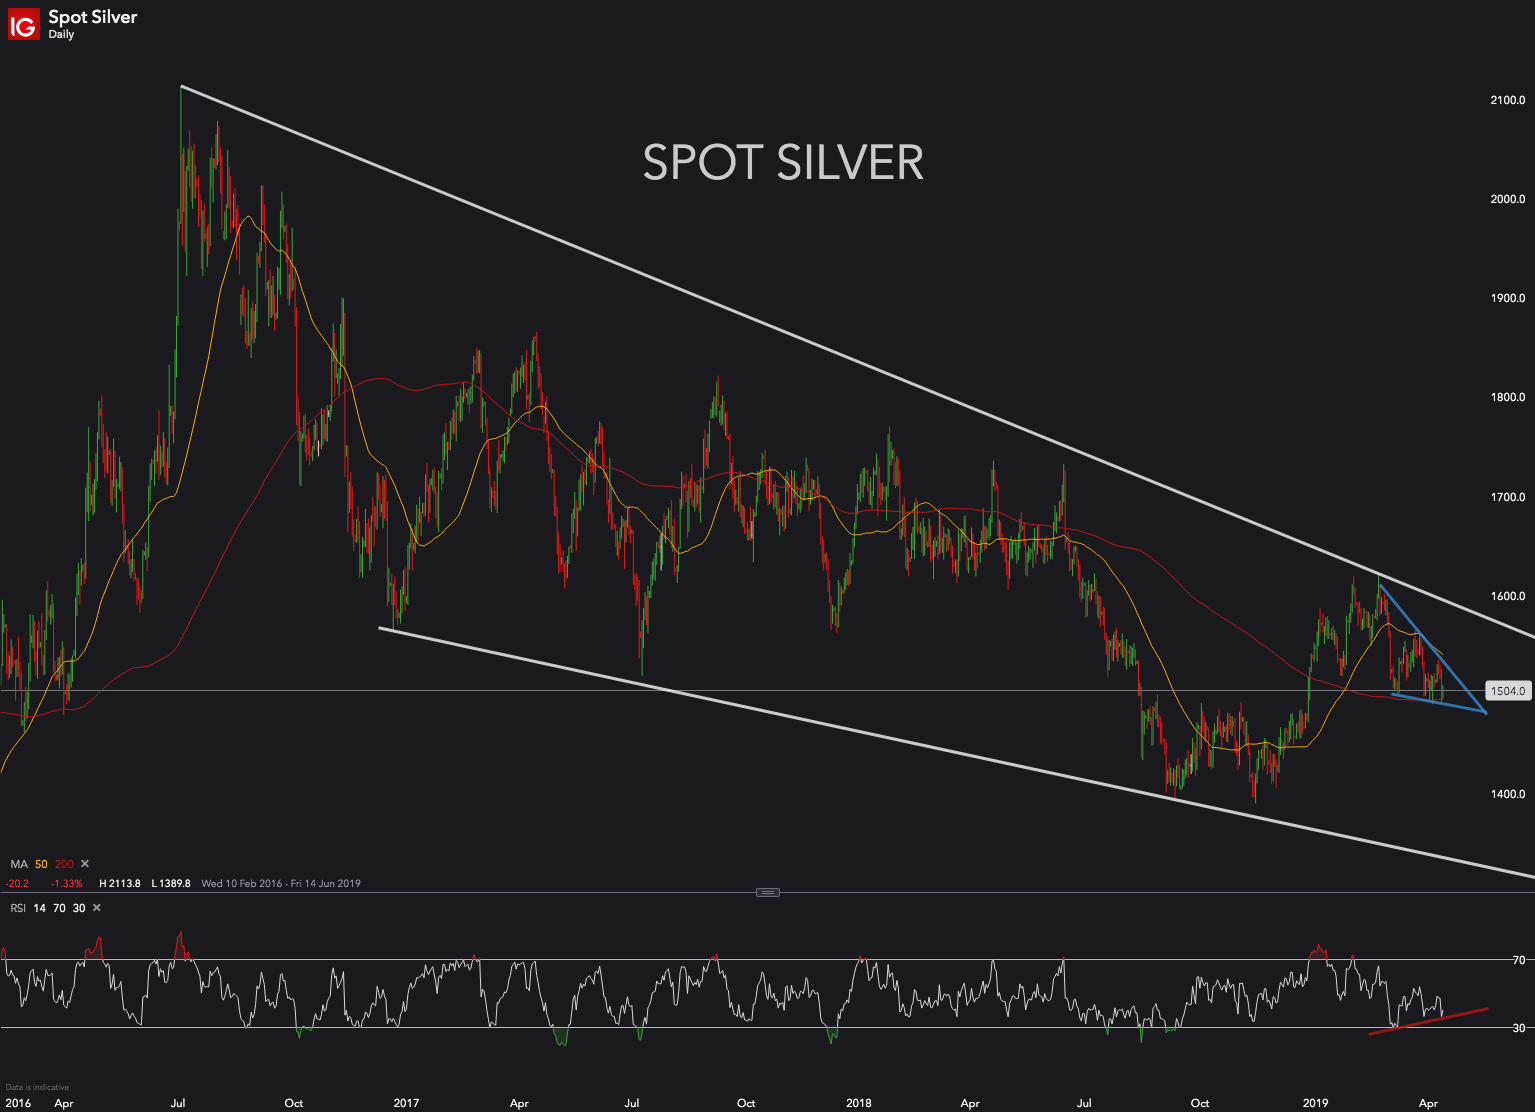 Silver's price action is coiling up – is it poised for a breakout? ($SLV)